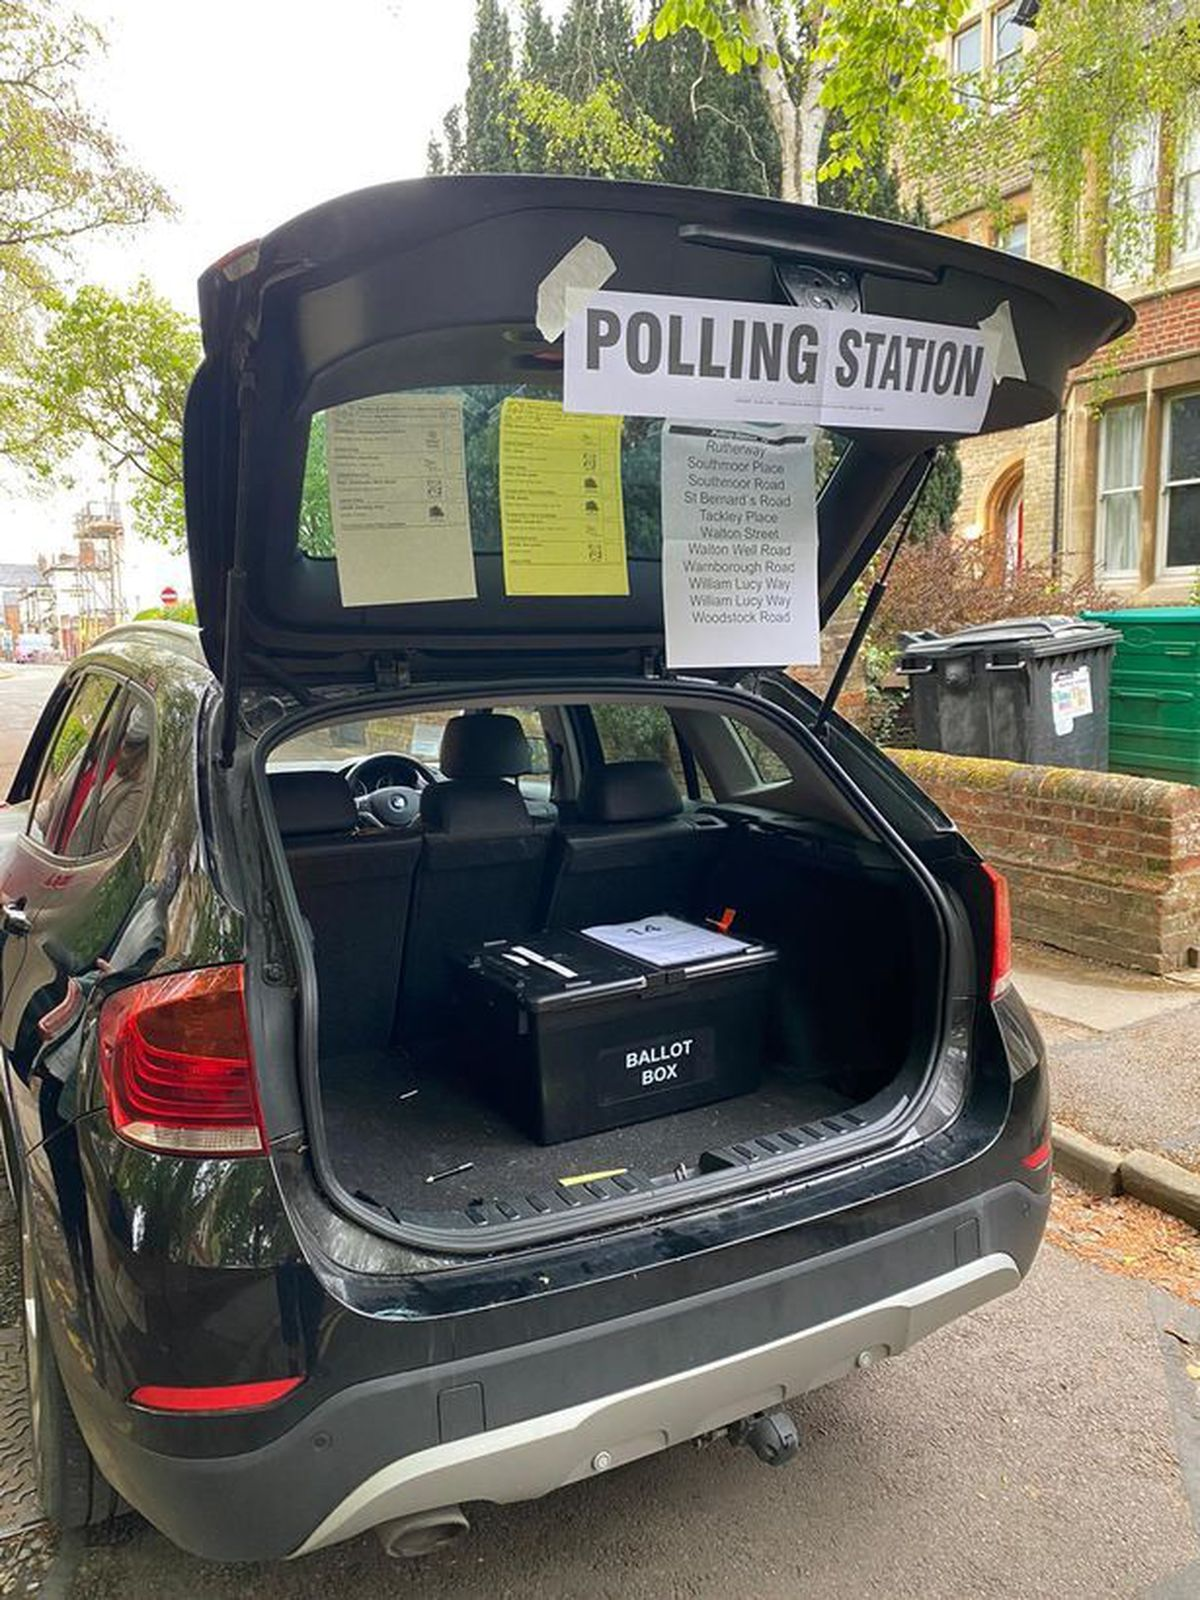 The temporary polling station that had to be set up until the keyholder arrived